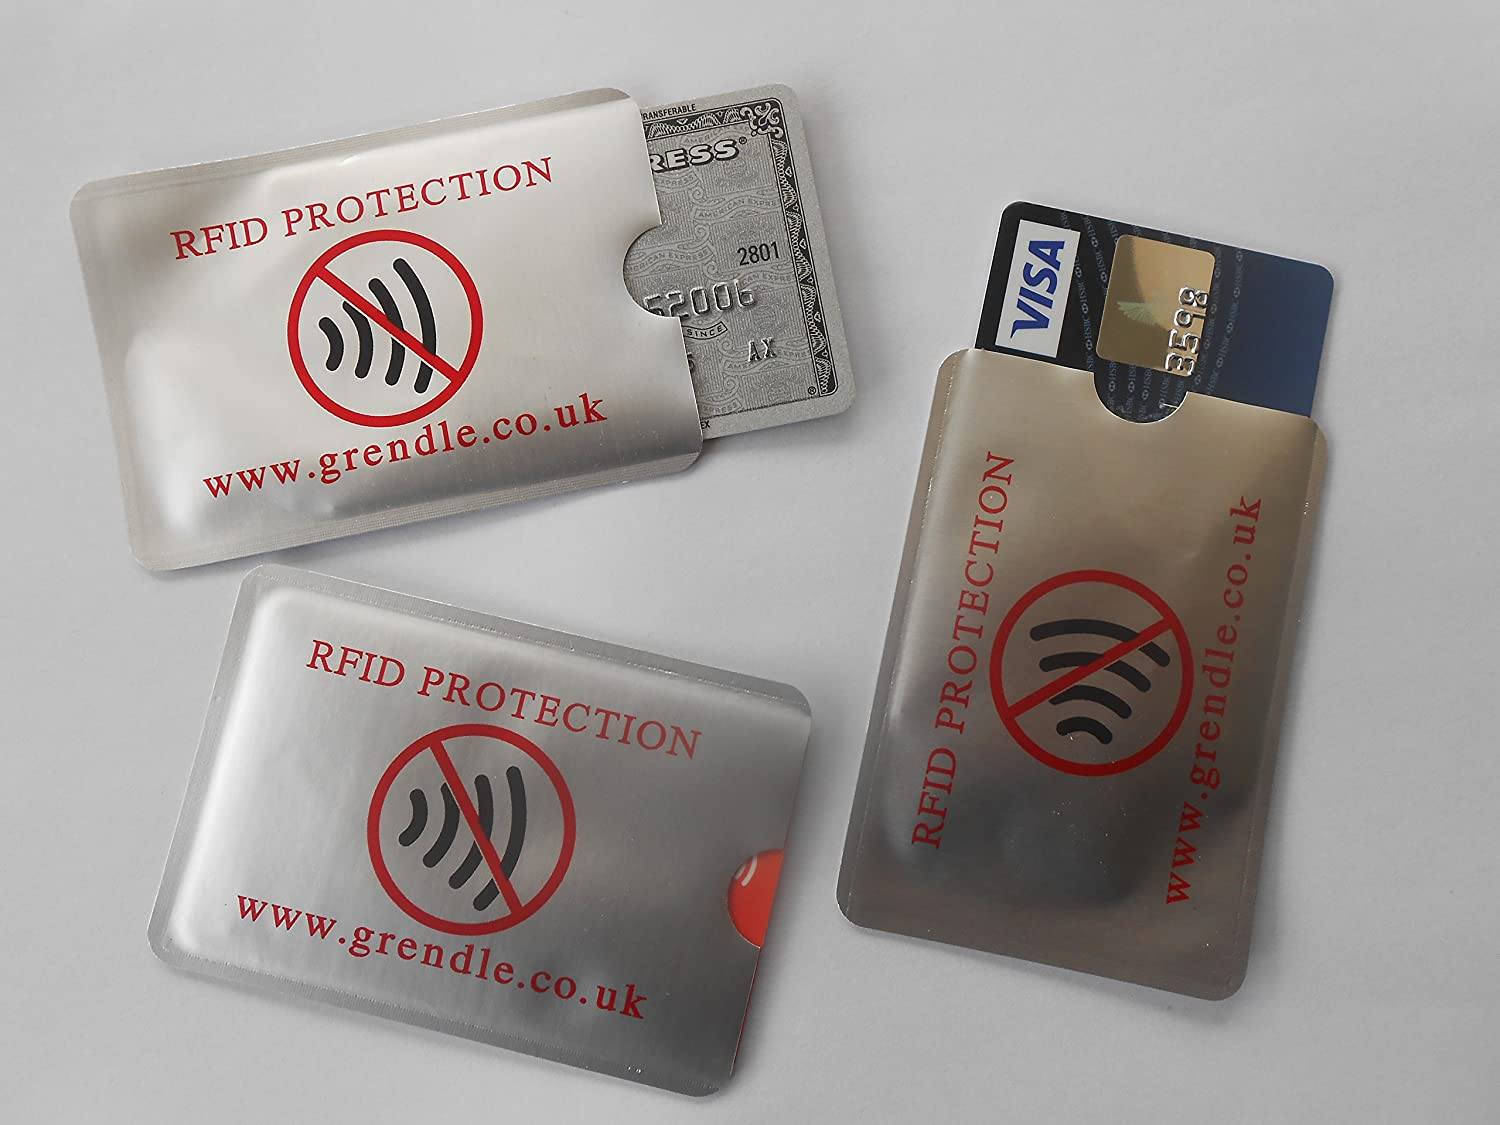 3 x RFID Credit / Debit Card Protectors GRENDLE